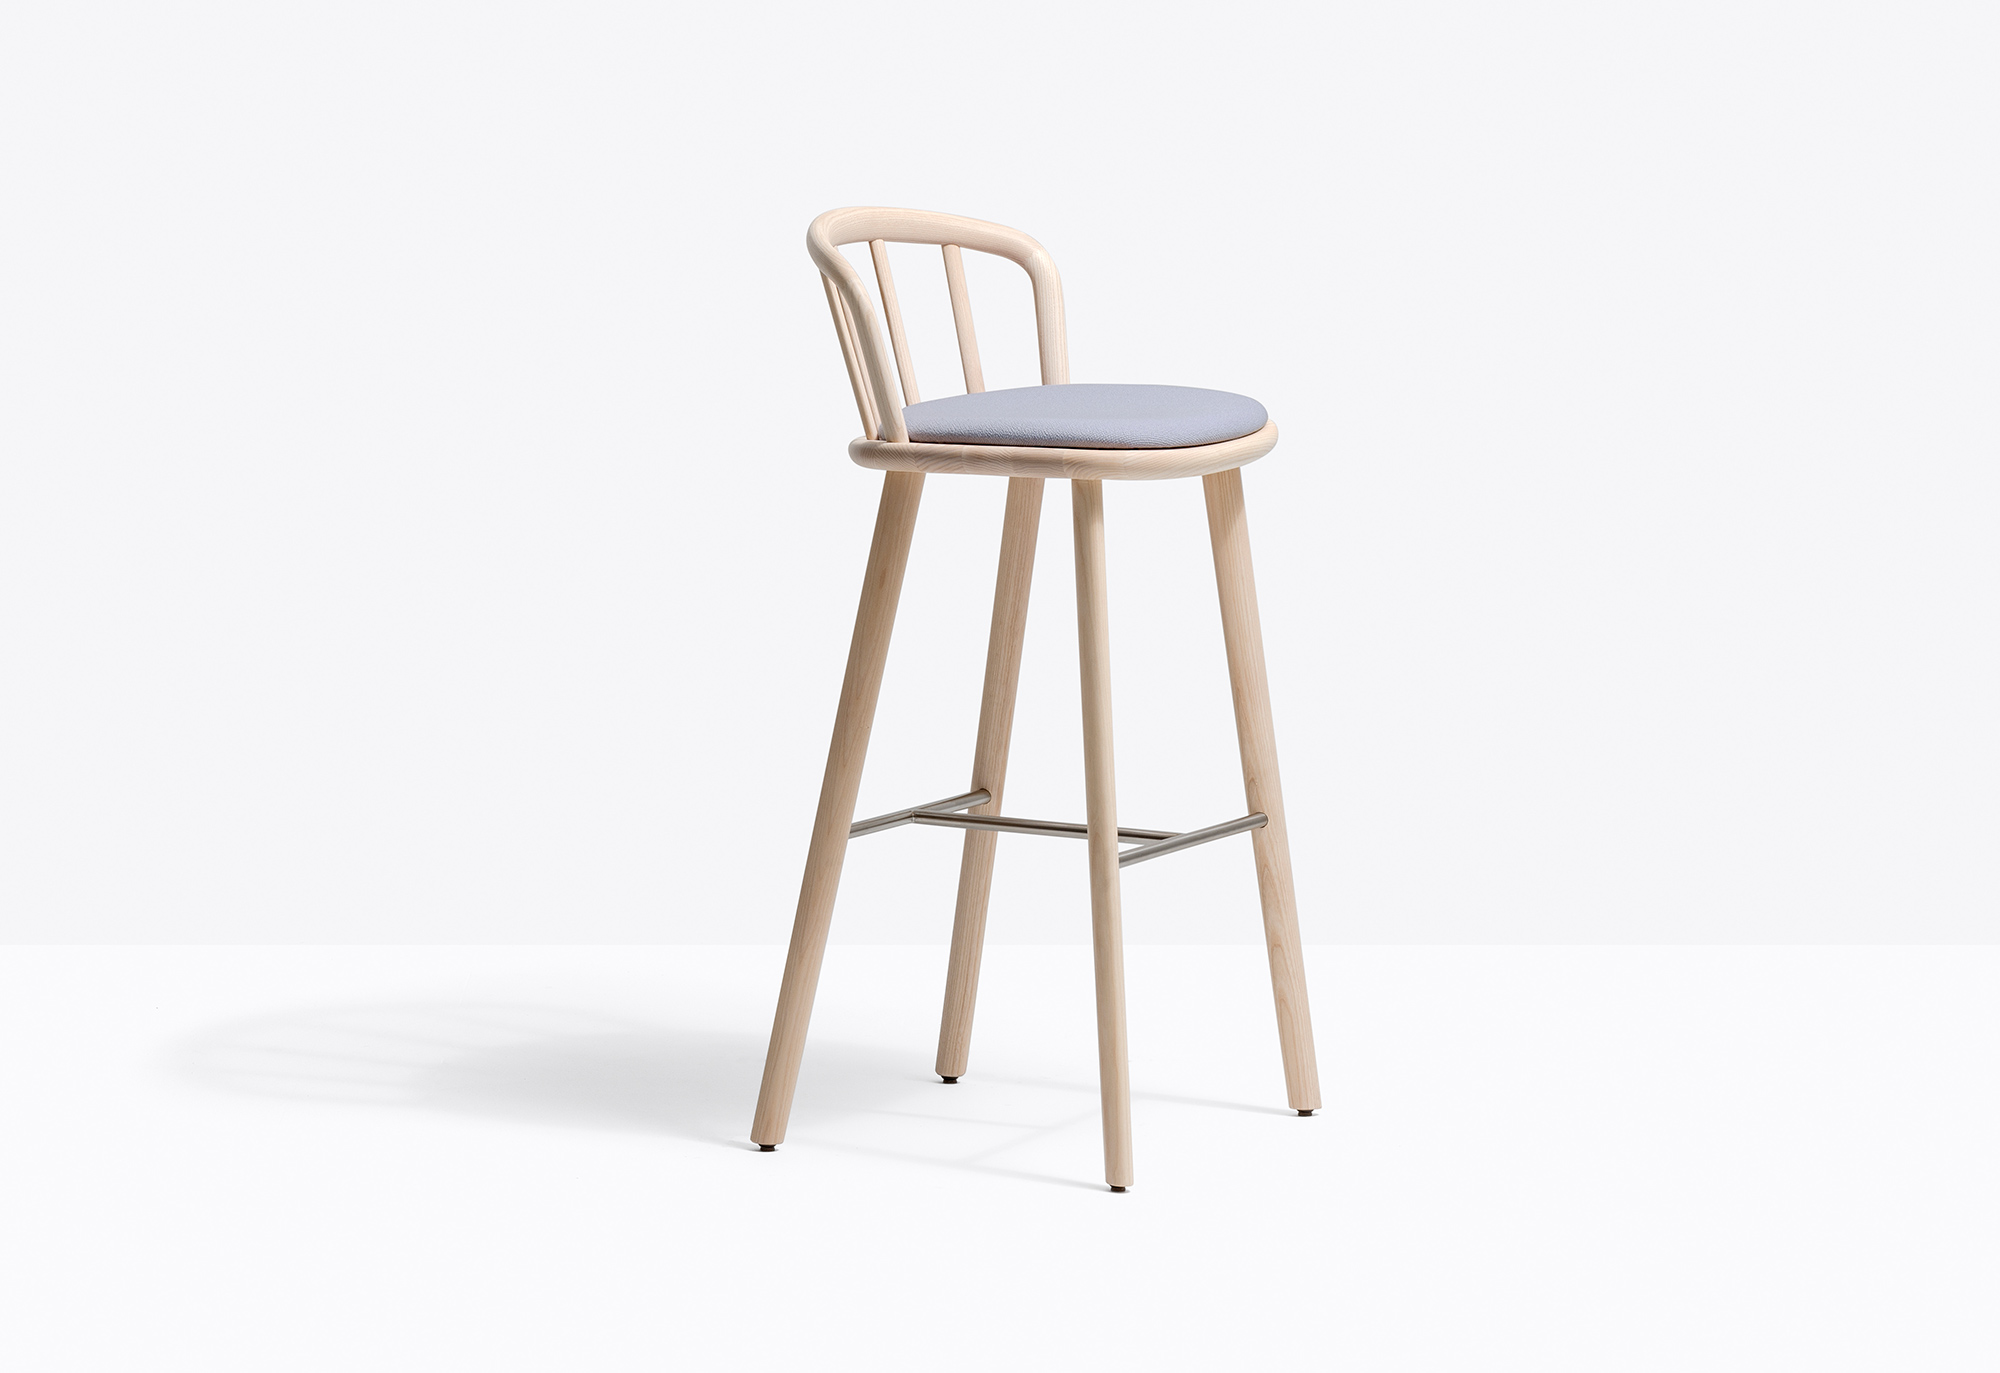 Nym Stool with Cushion - Nym barstool adopts the archetypal structure of the English Windsor chair, reinterpreting and streamlining it to reflect industrial manufacturing systems. The arched backrest in elliptical-section bentwood flows seamlessly into the shaped solid wooden padded seat to form an armrest. Solid ash wood legs and a stainless steel footrest. Seat height 775 mm. | Matter of Stuff